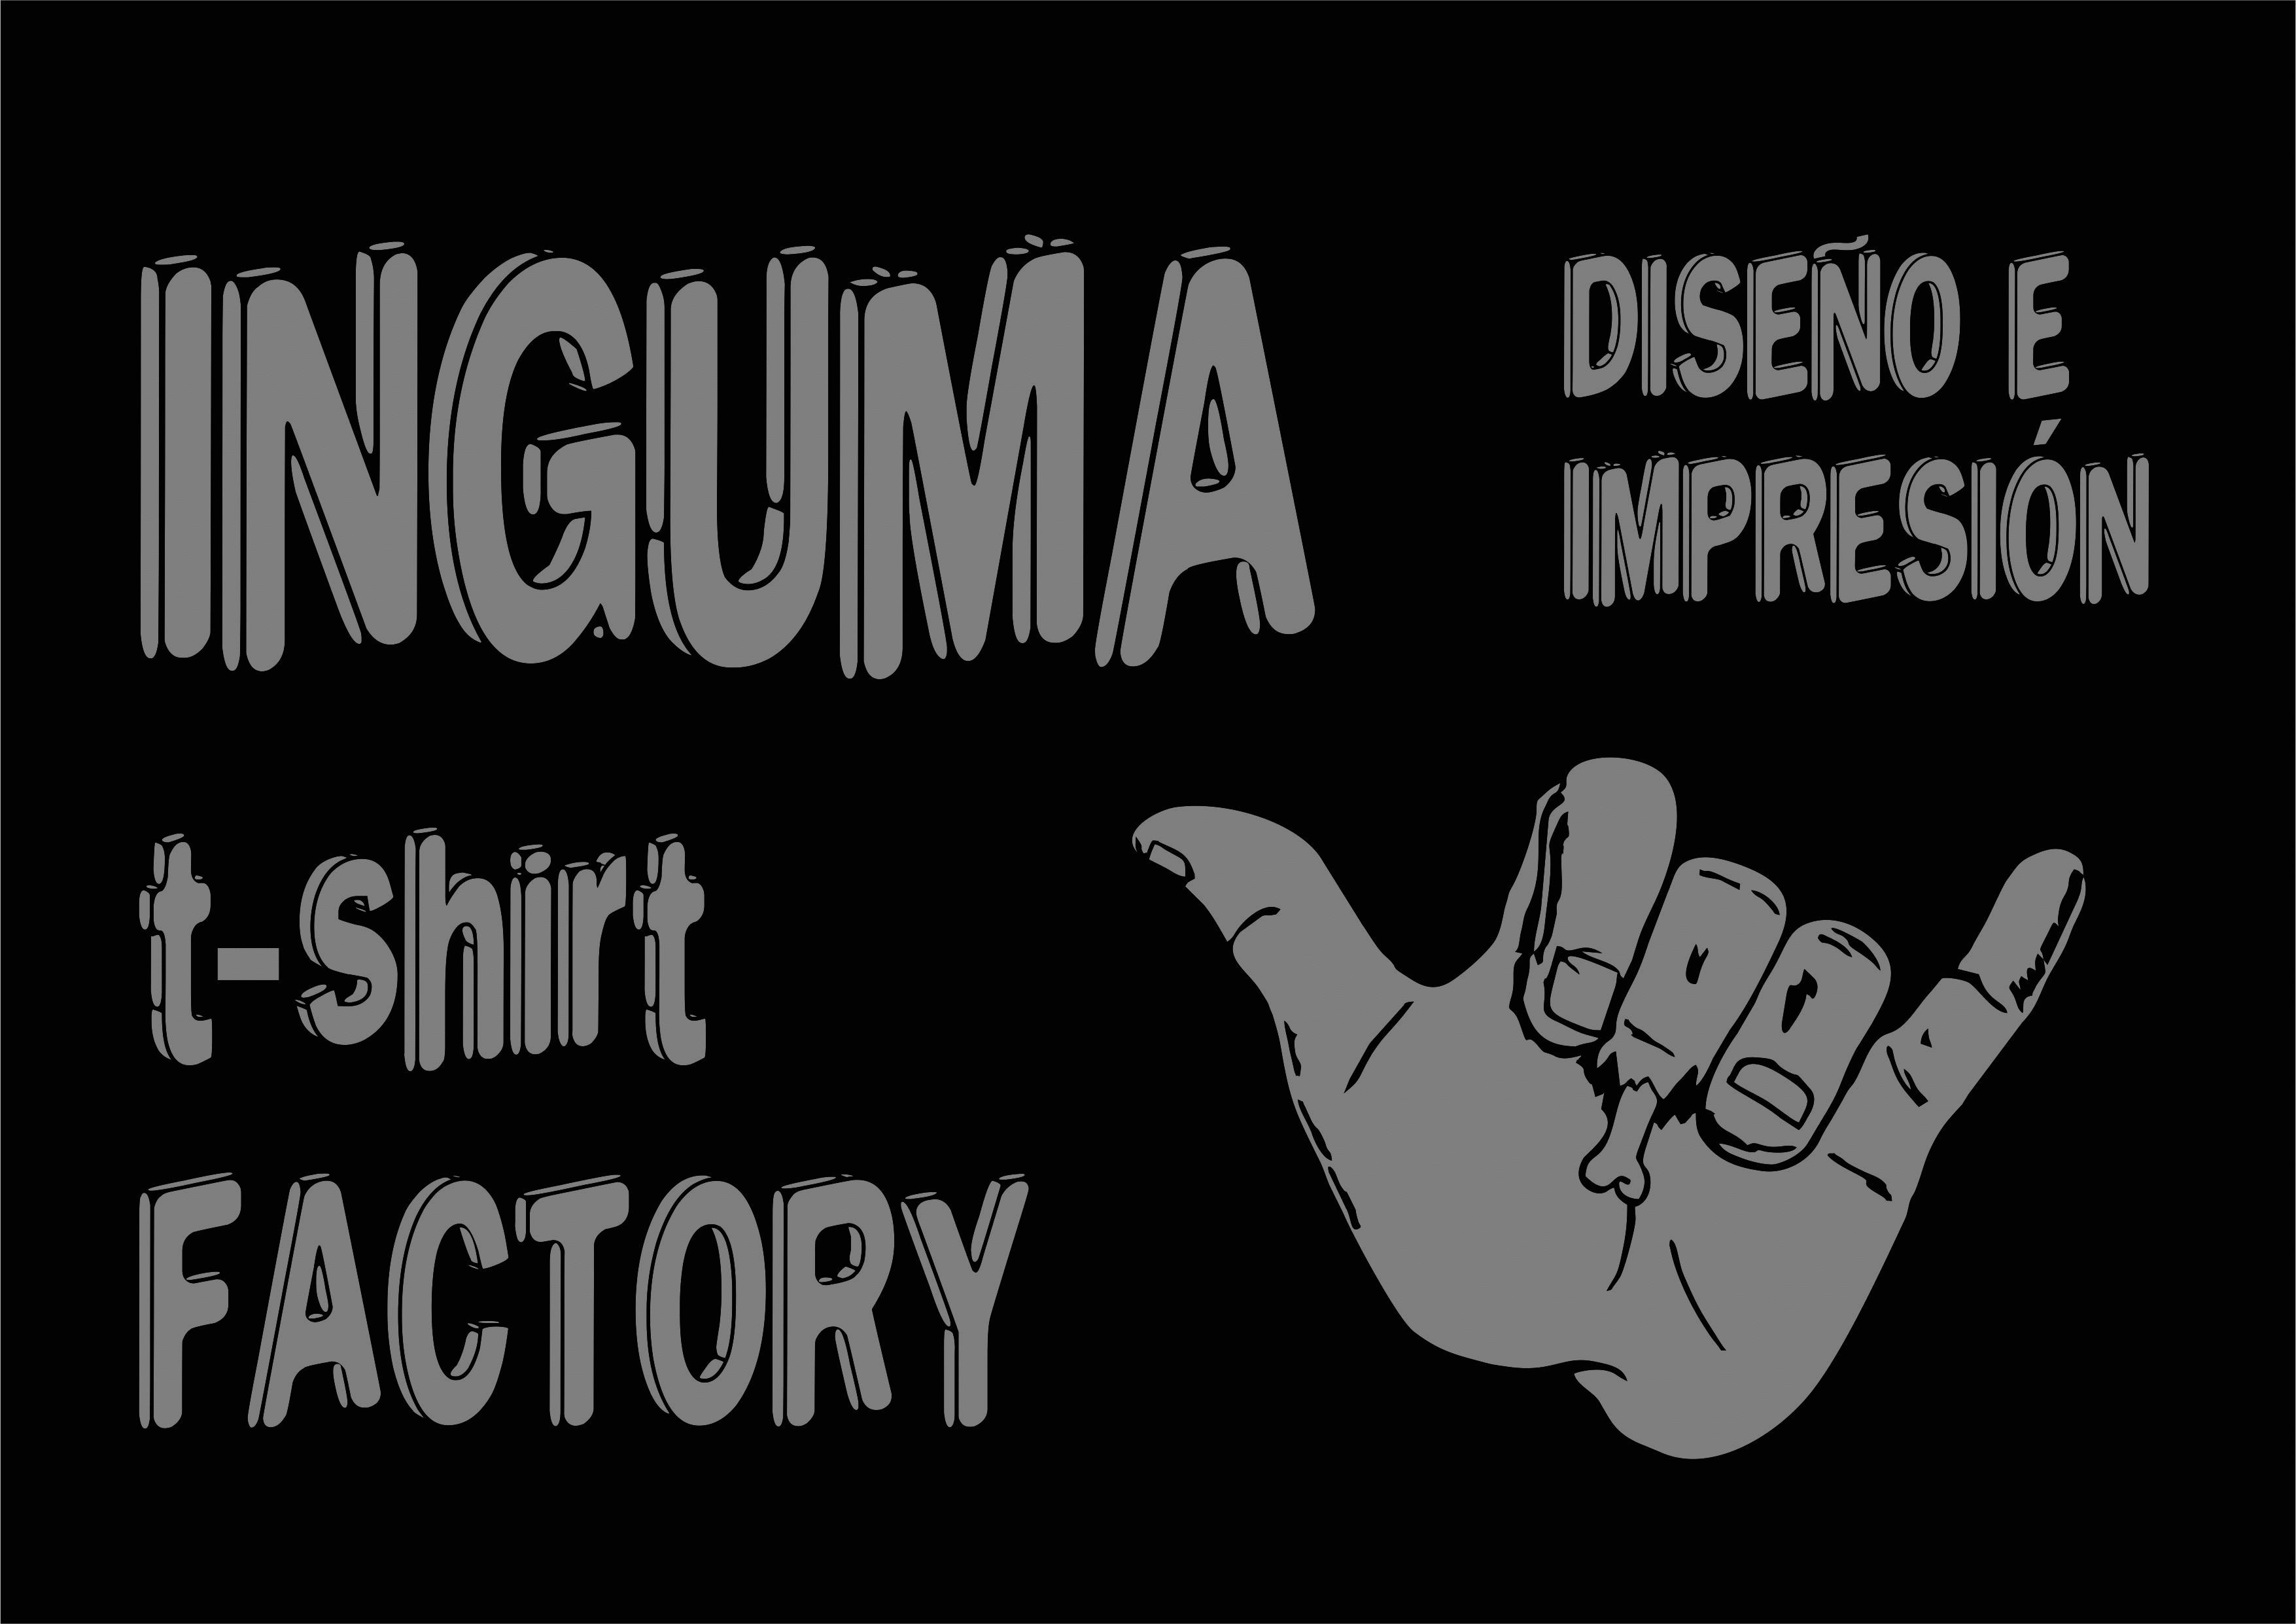 INGUMA t-shirt FACTORY